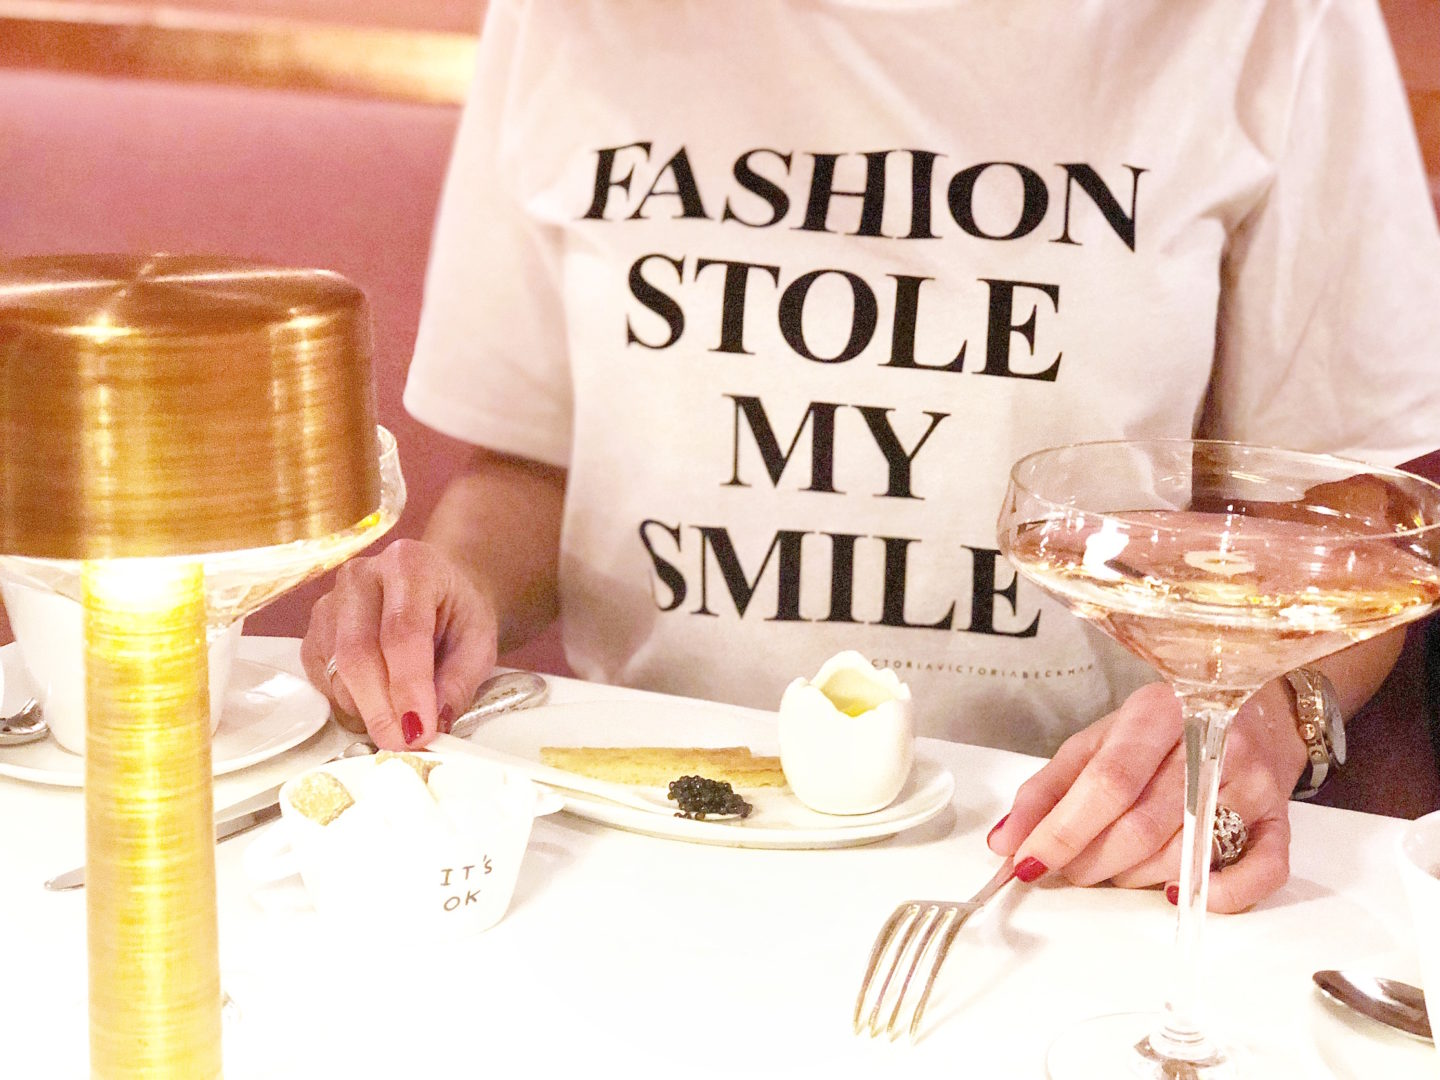 fashion stole my smile victoria beckham london sketch afternoon tea